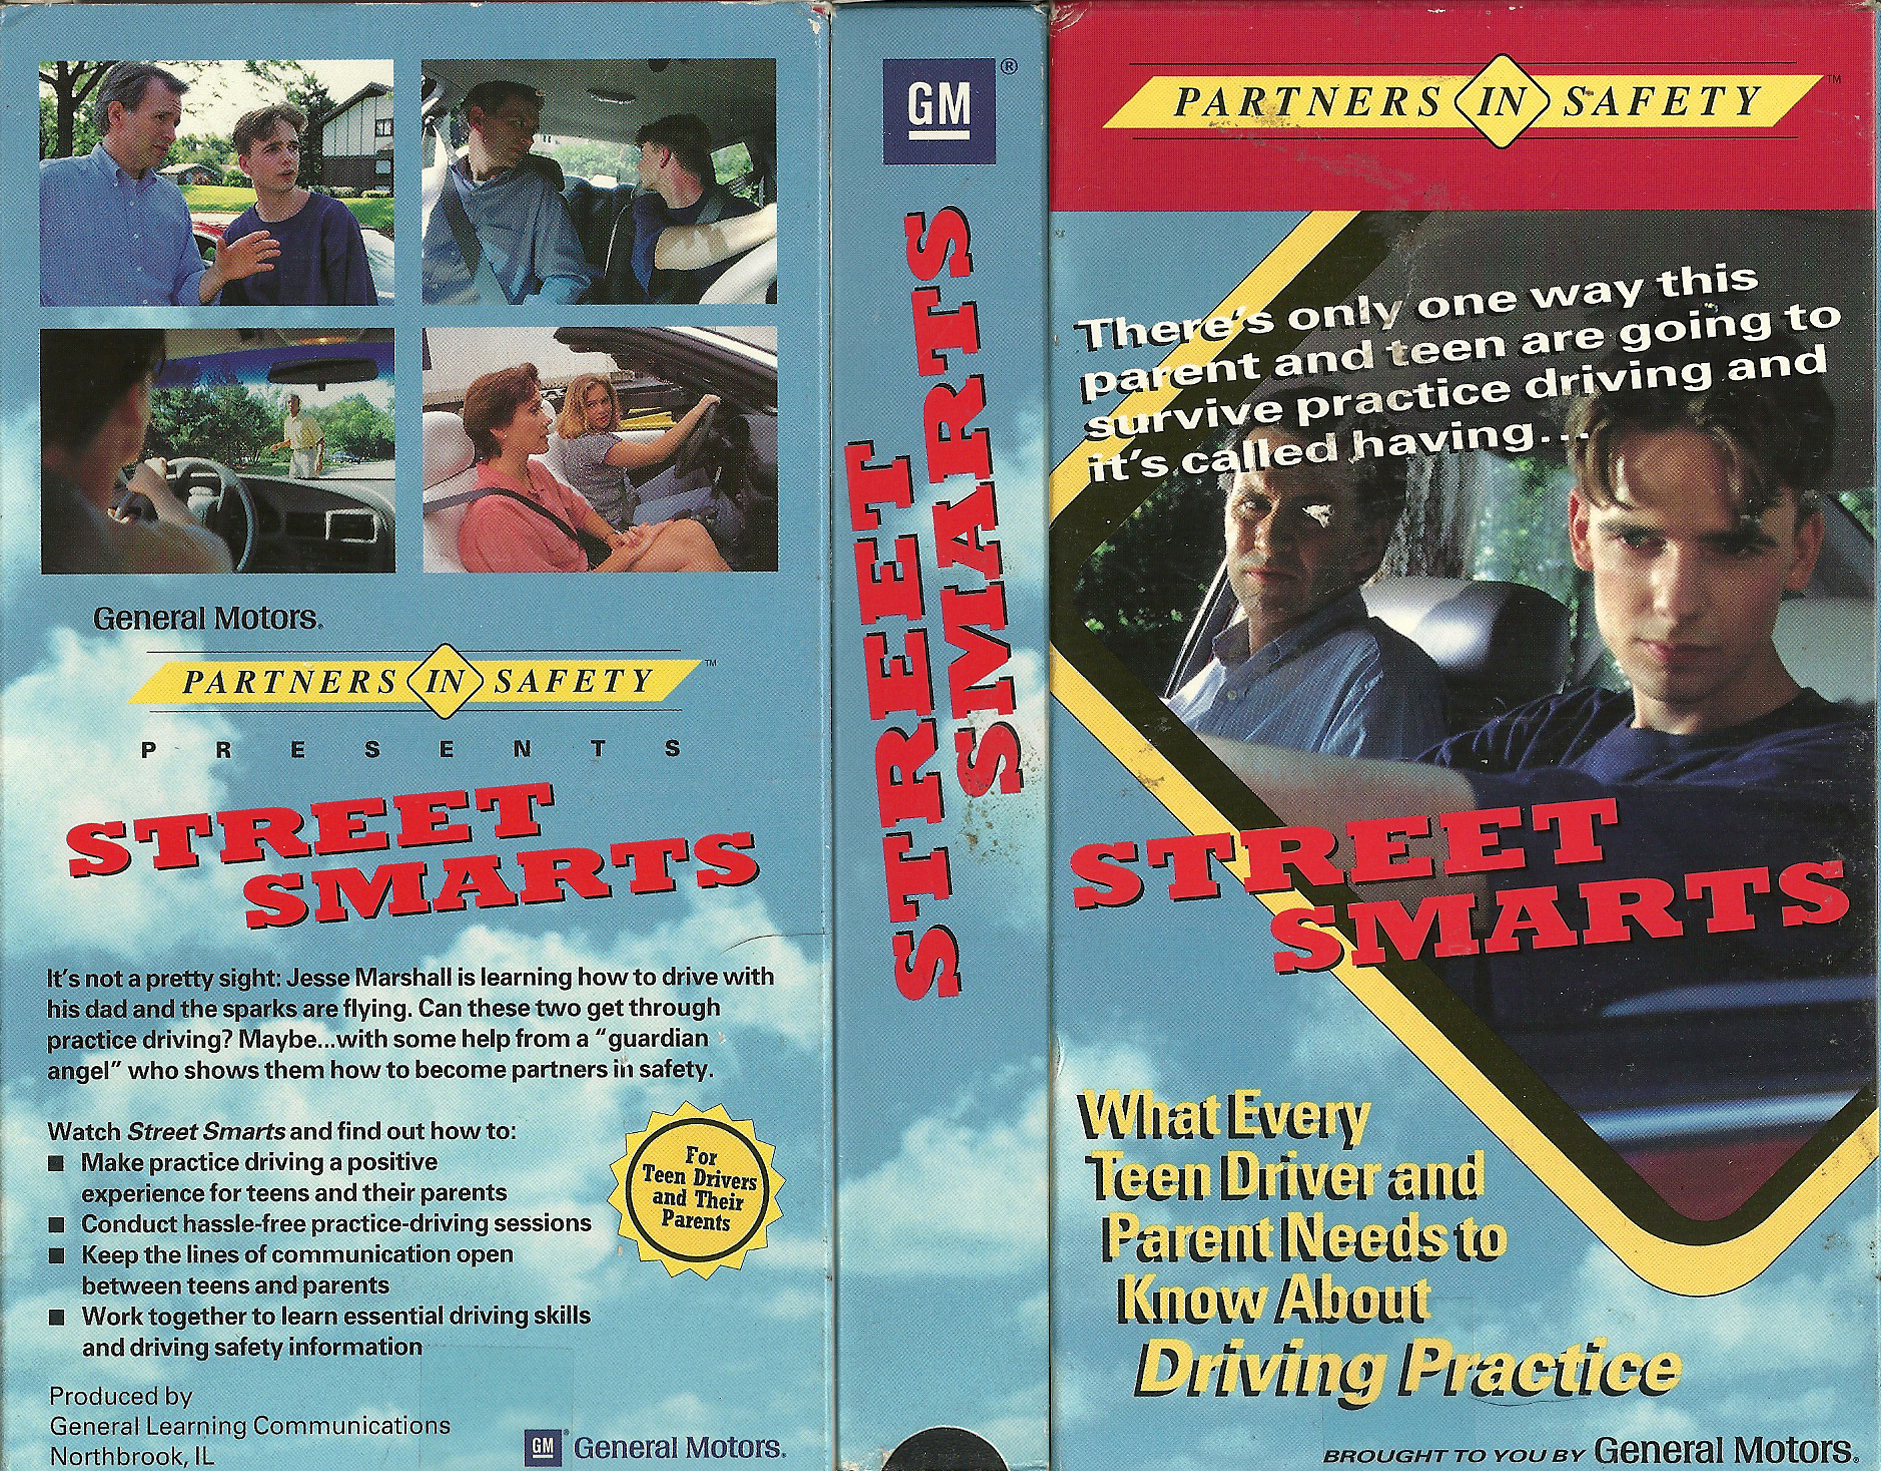 STREET SMART WHAT EVERY TEEN DRIVER AND PARENT NEEDS TO KNOW ABOUT DRIVING PRACTICE Free Blonde Milf Porn